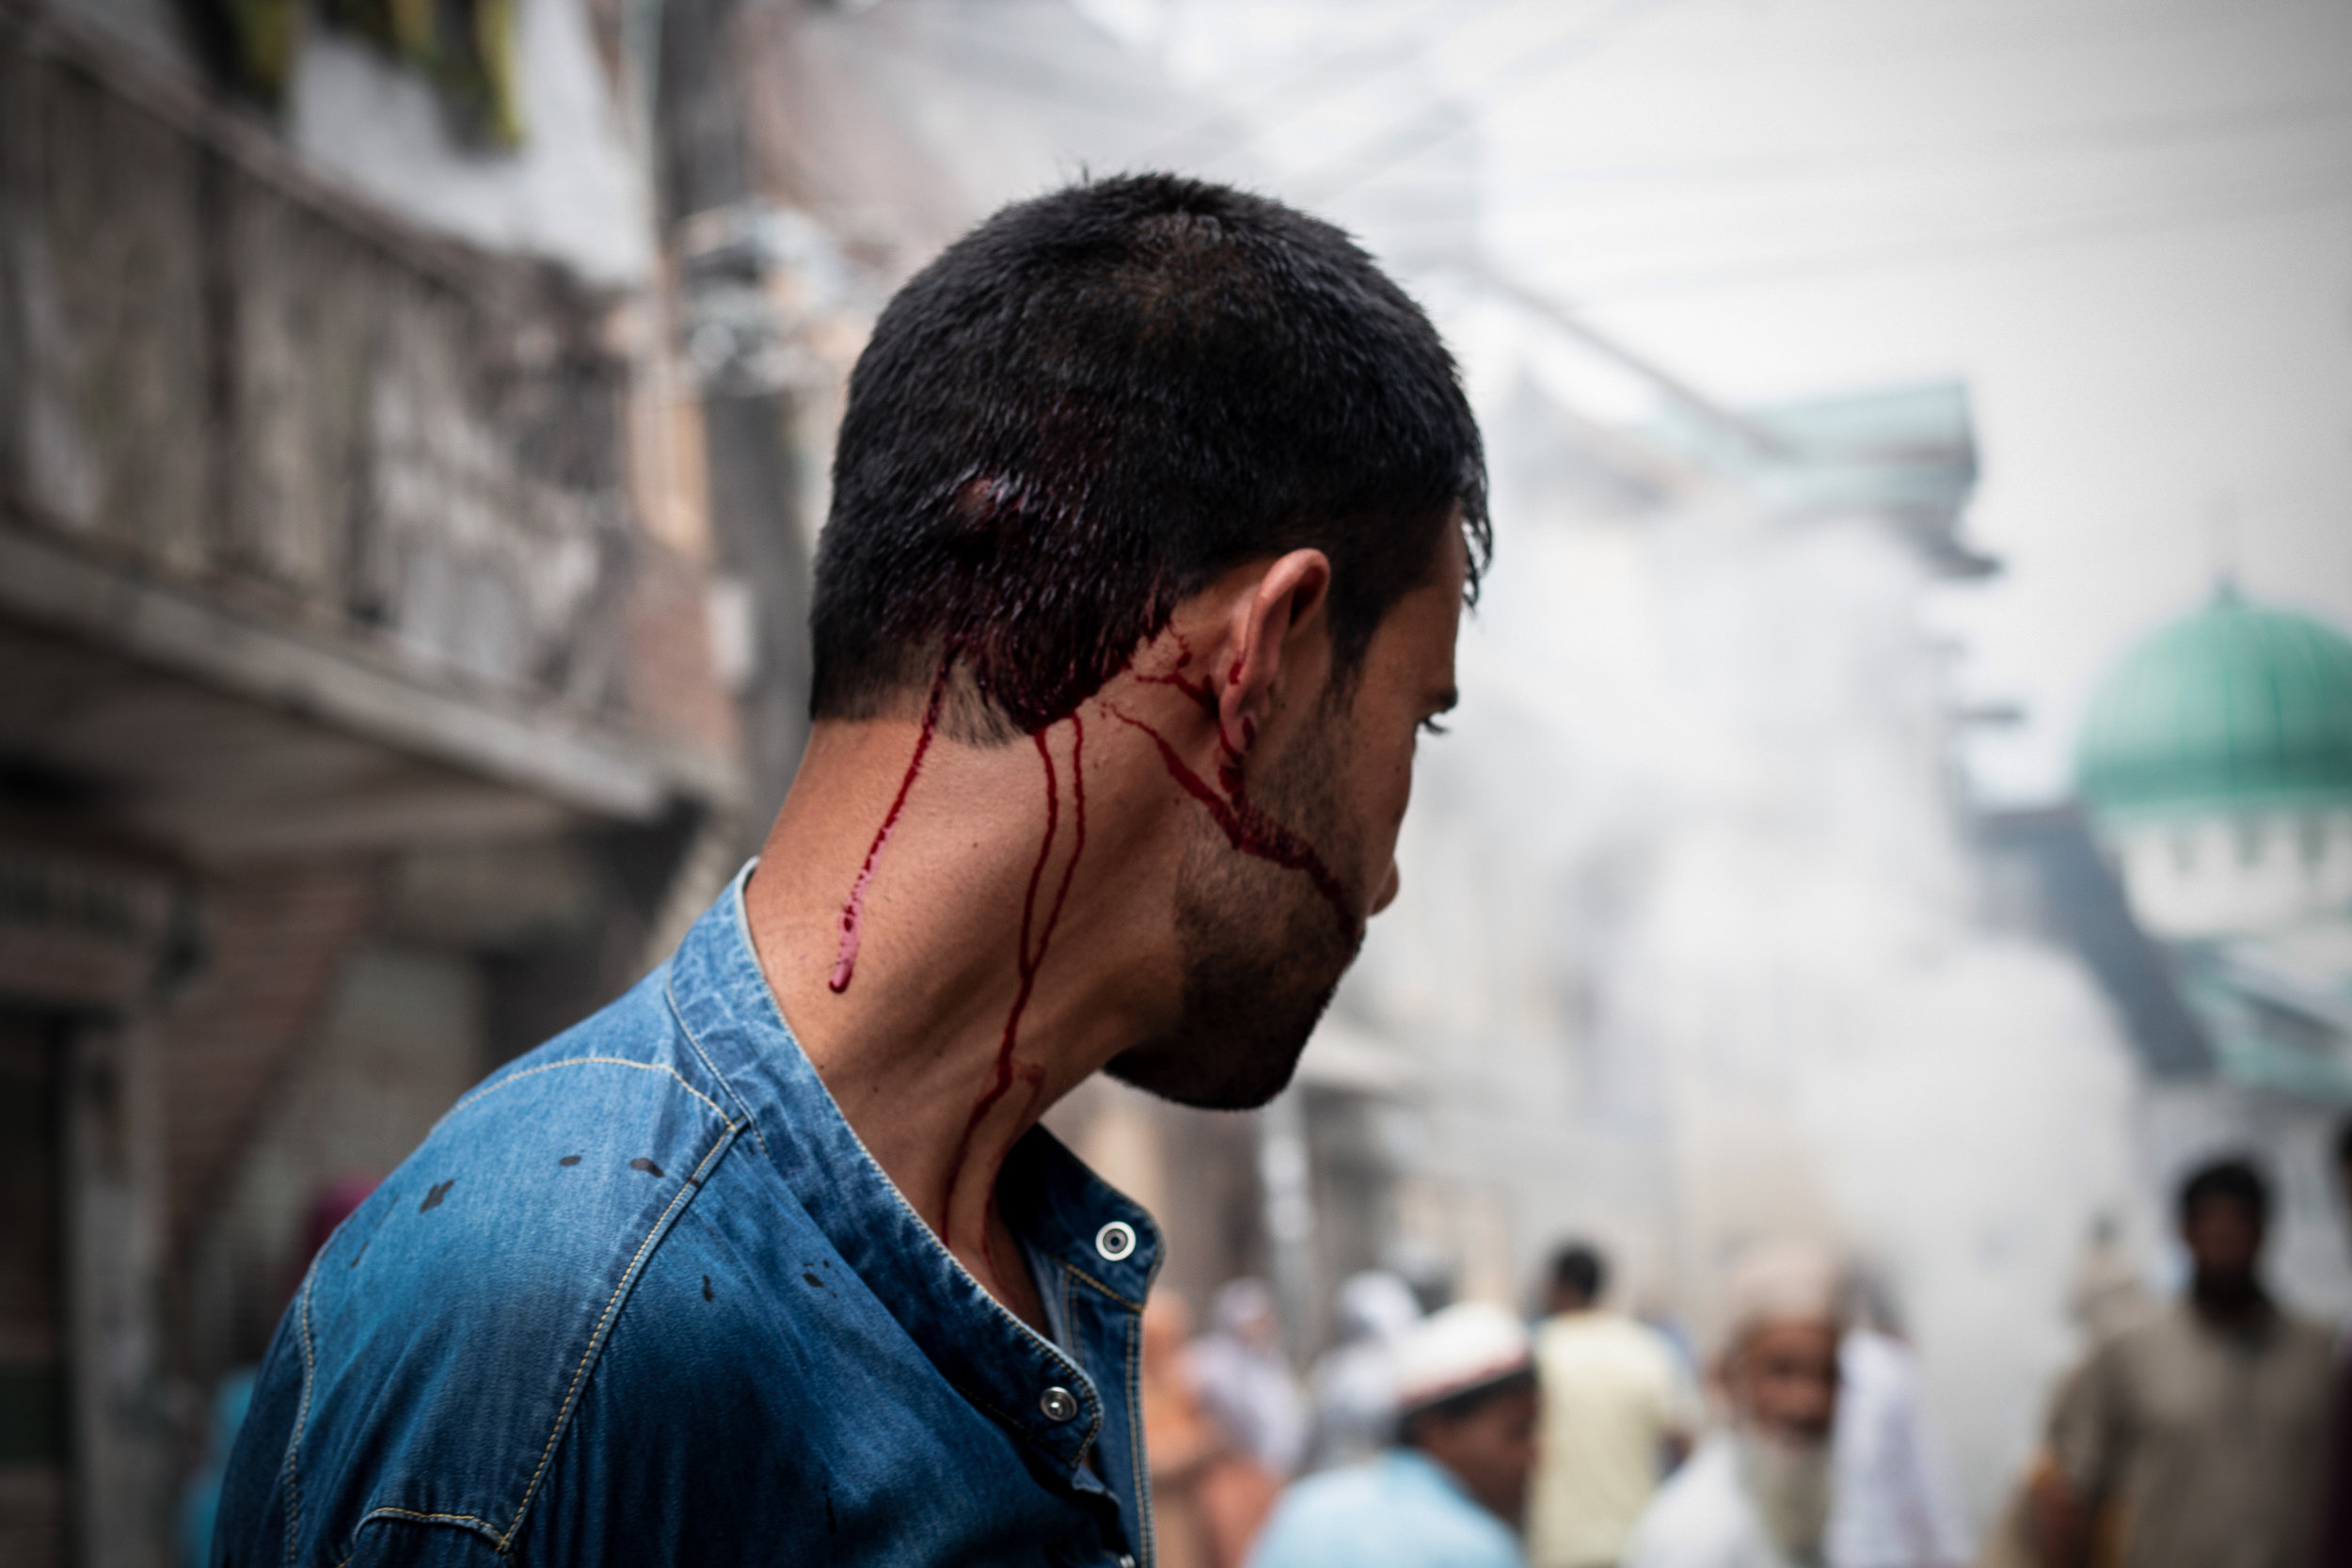 A victim who was hit by a lead pellet in his head. The fight which continued for hours left many protestors injured. Photo by Avinash Giri.